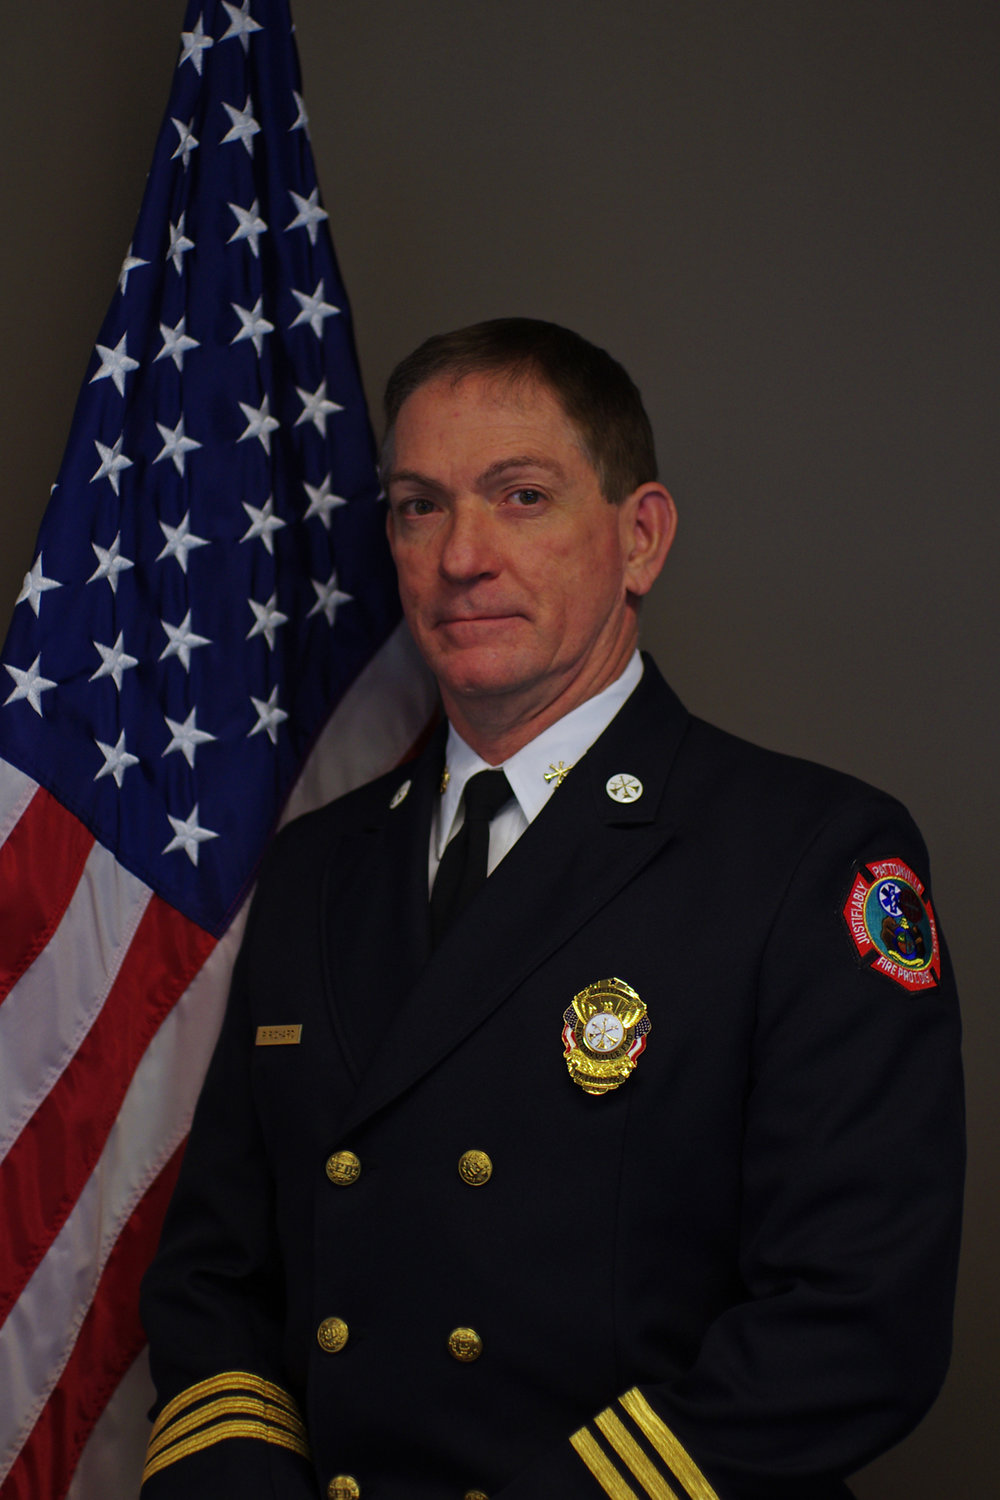 Deputy Chief-Fire Marshal Paul Richard